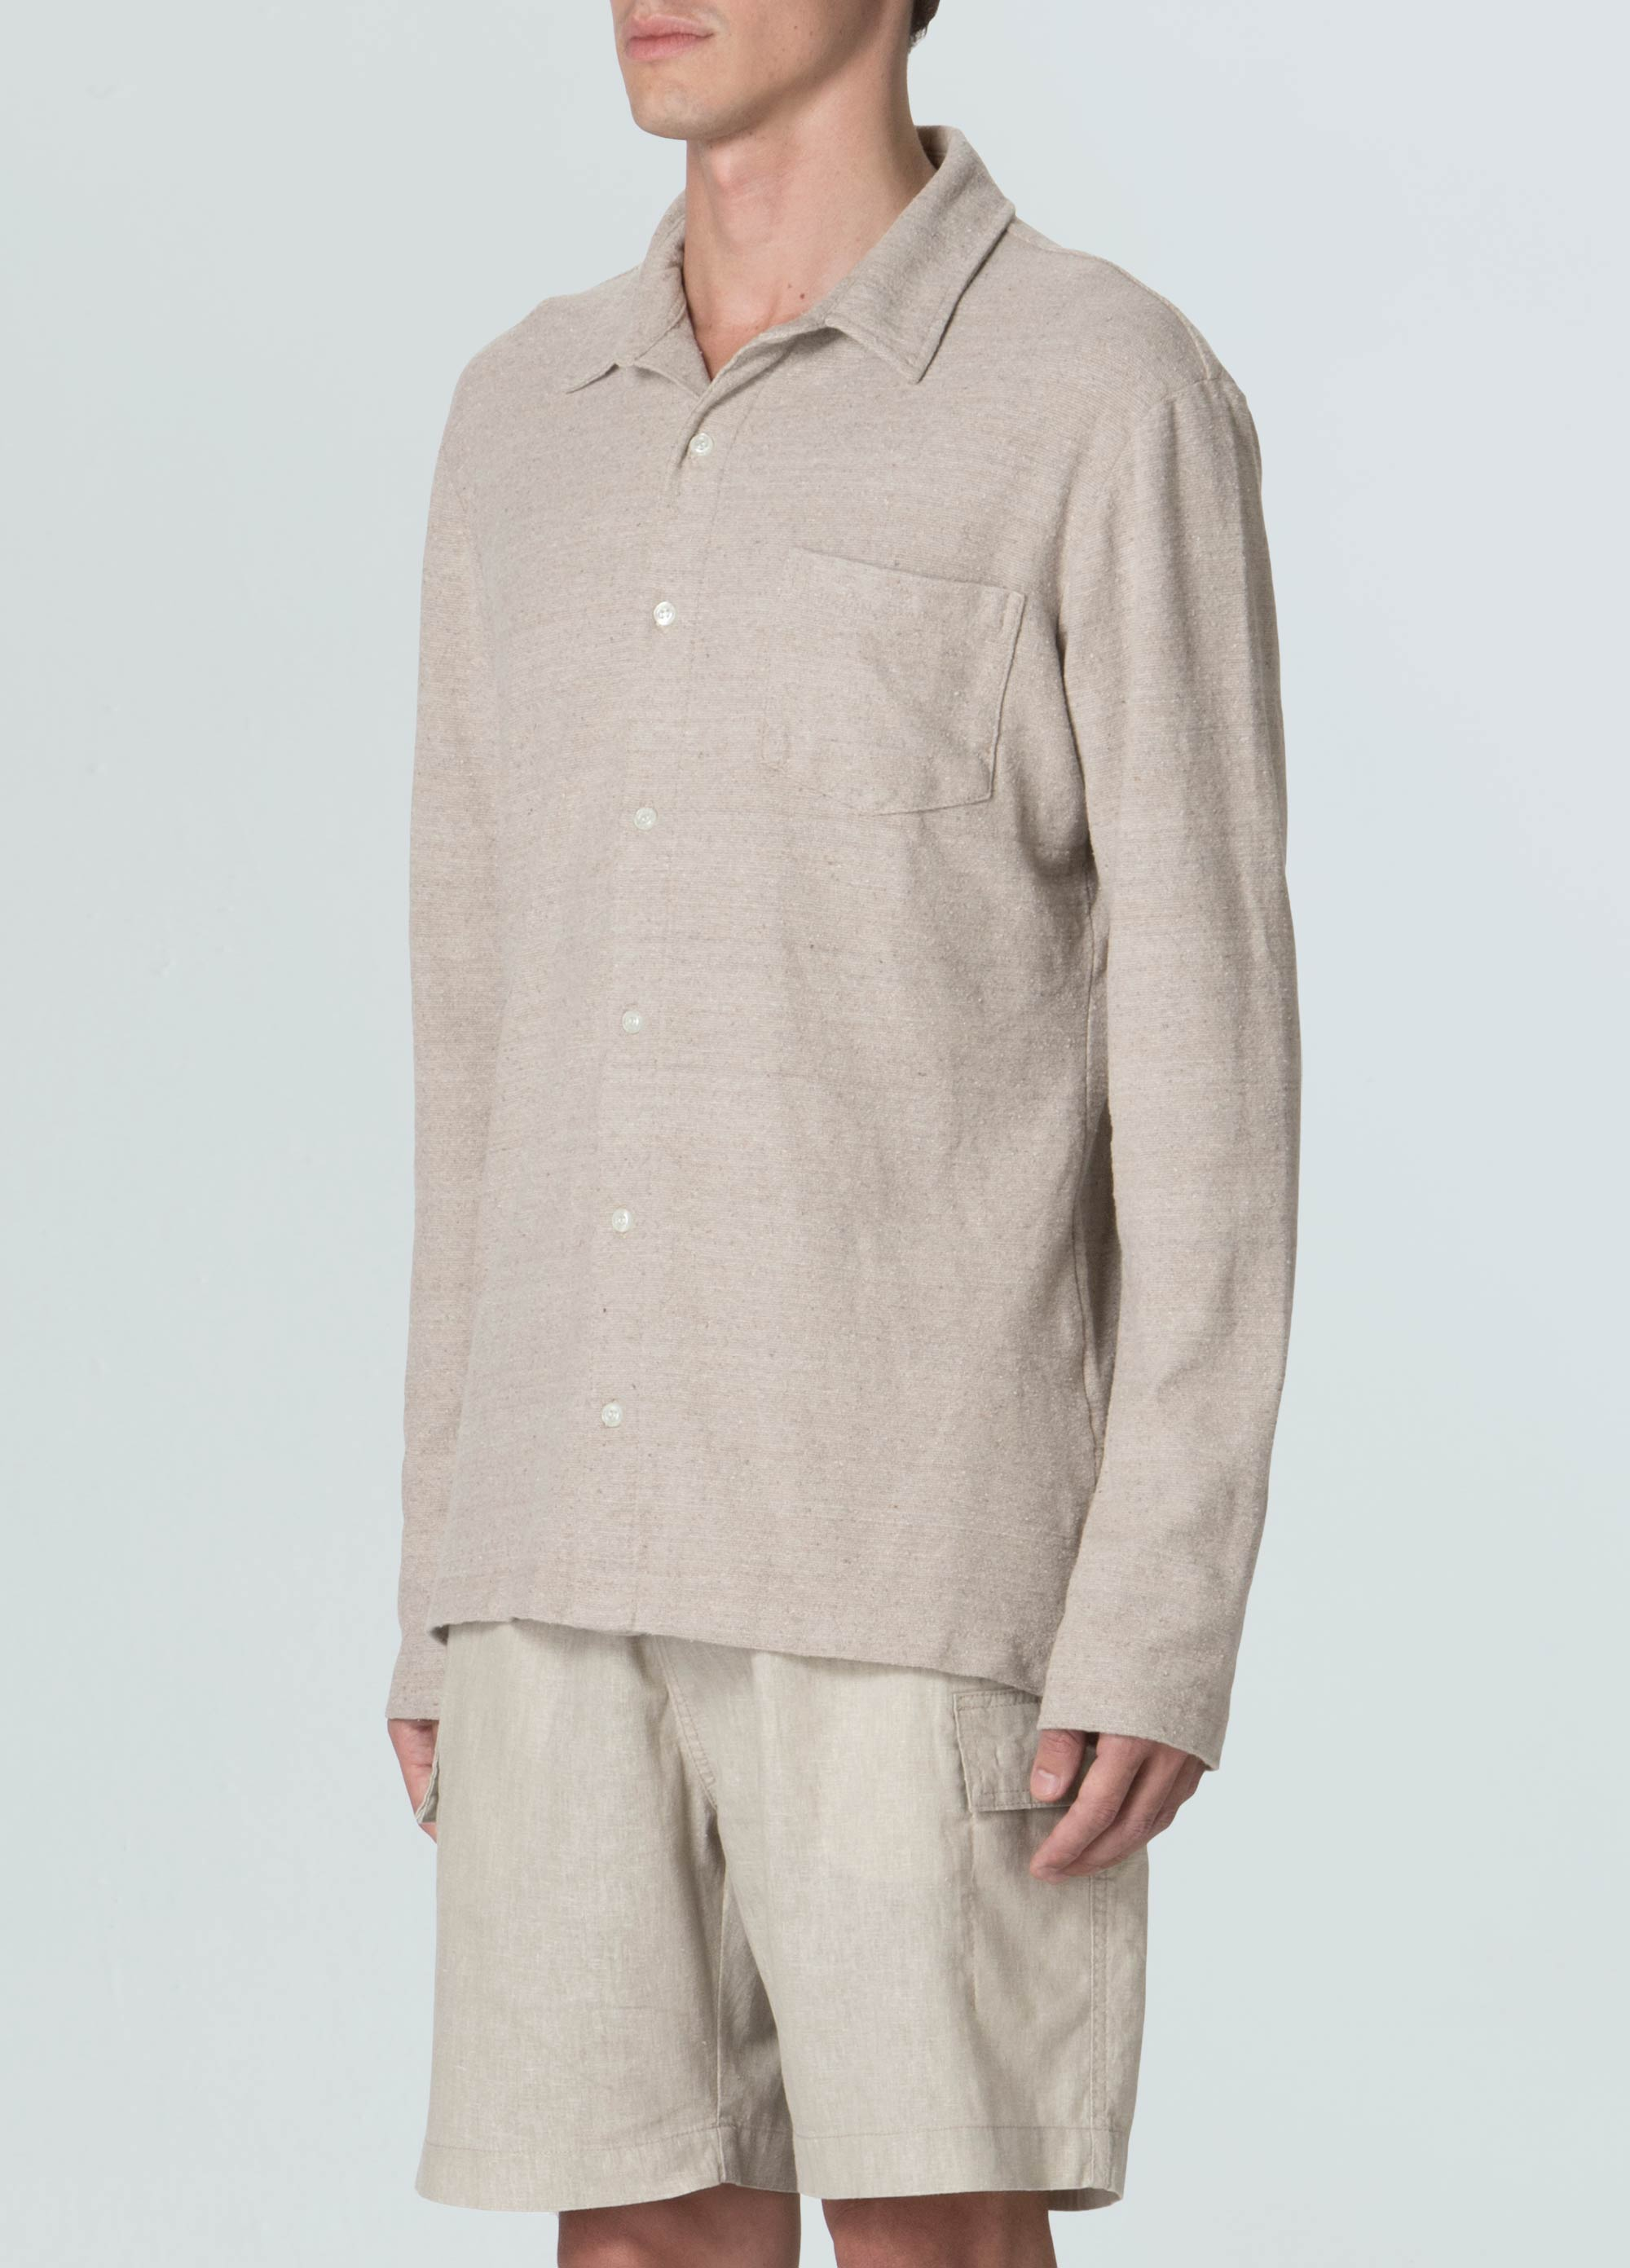 Eco Rustic Yoke Pocket Shirt